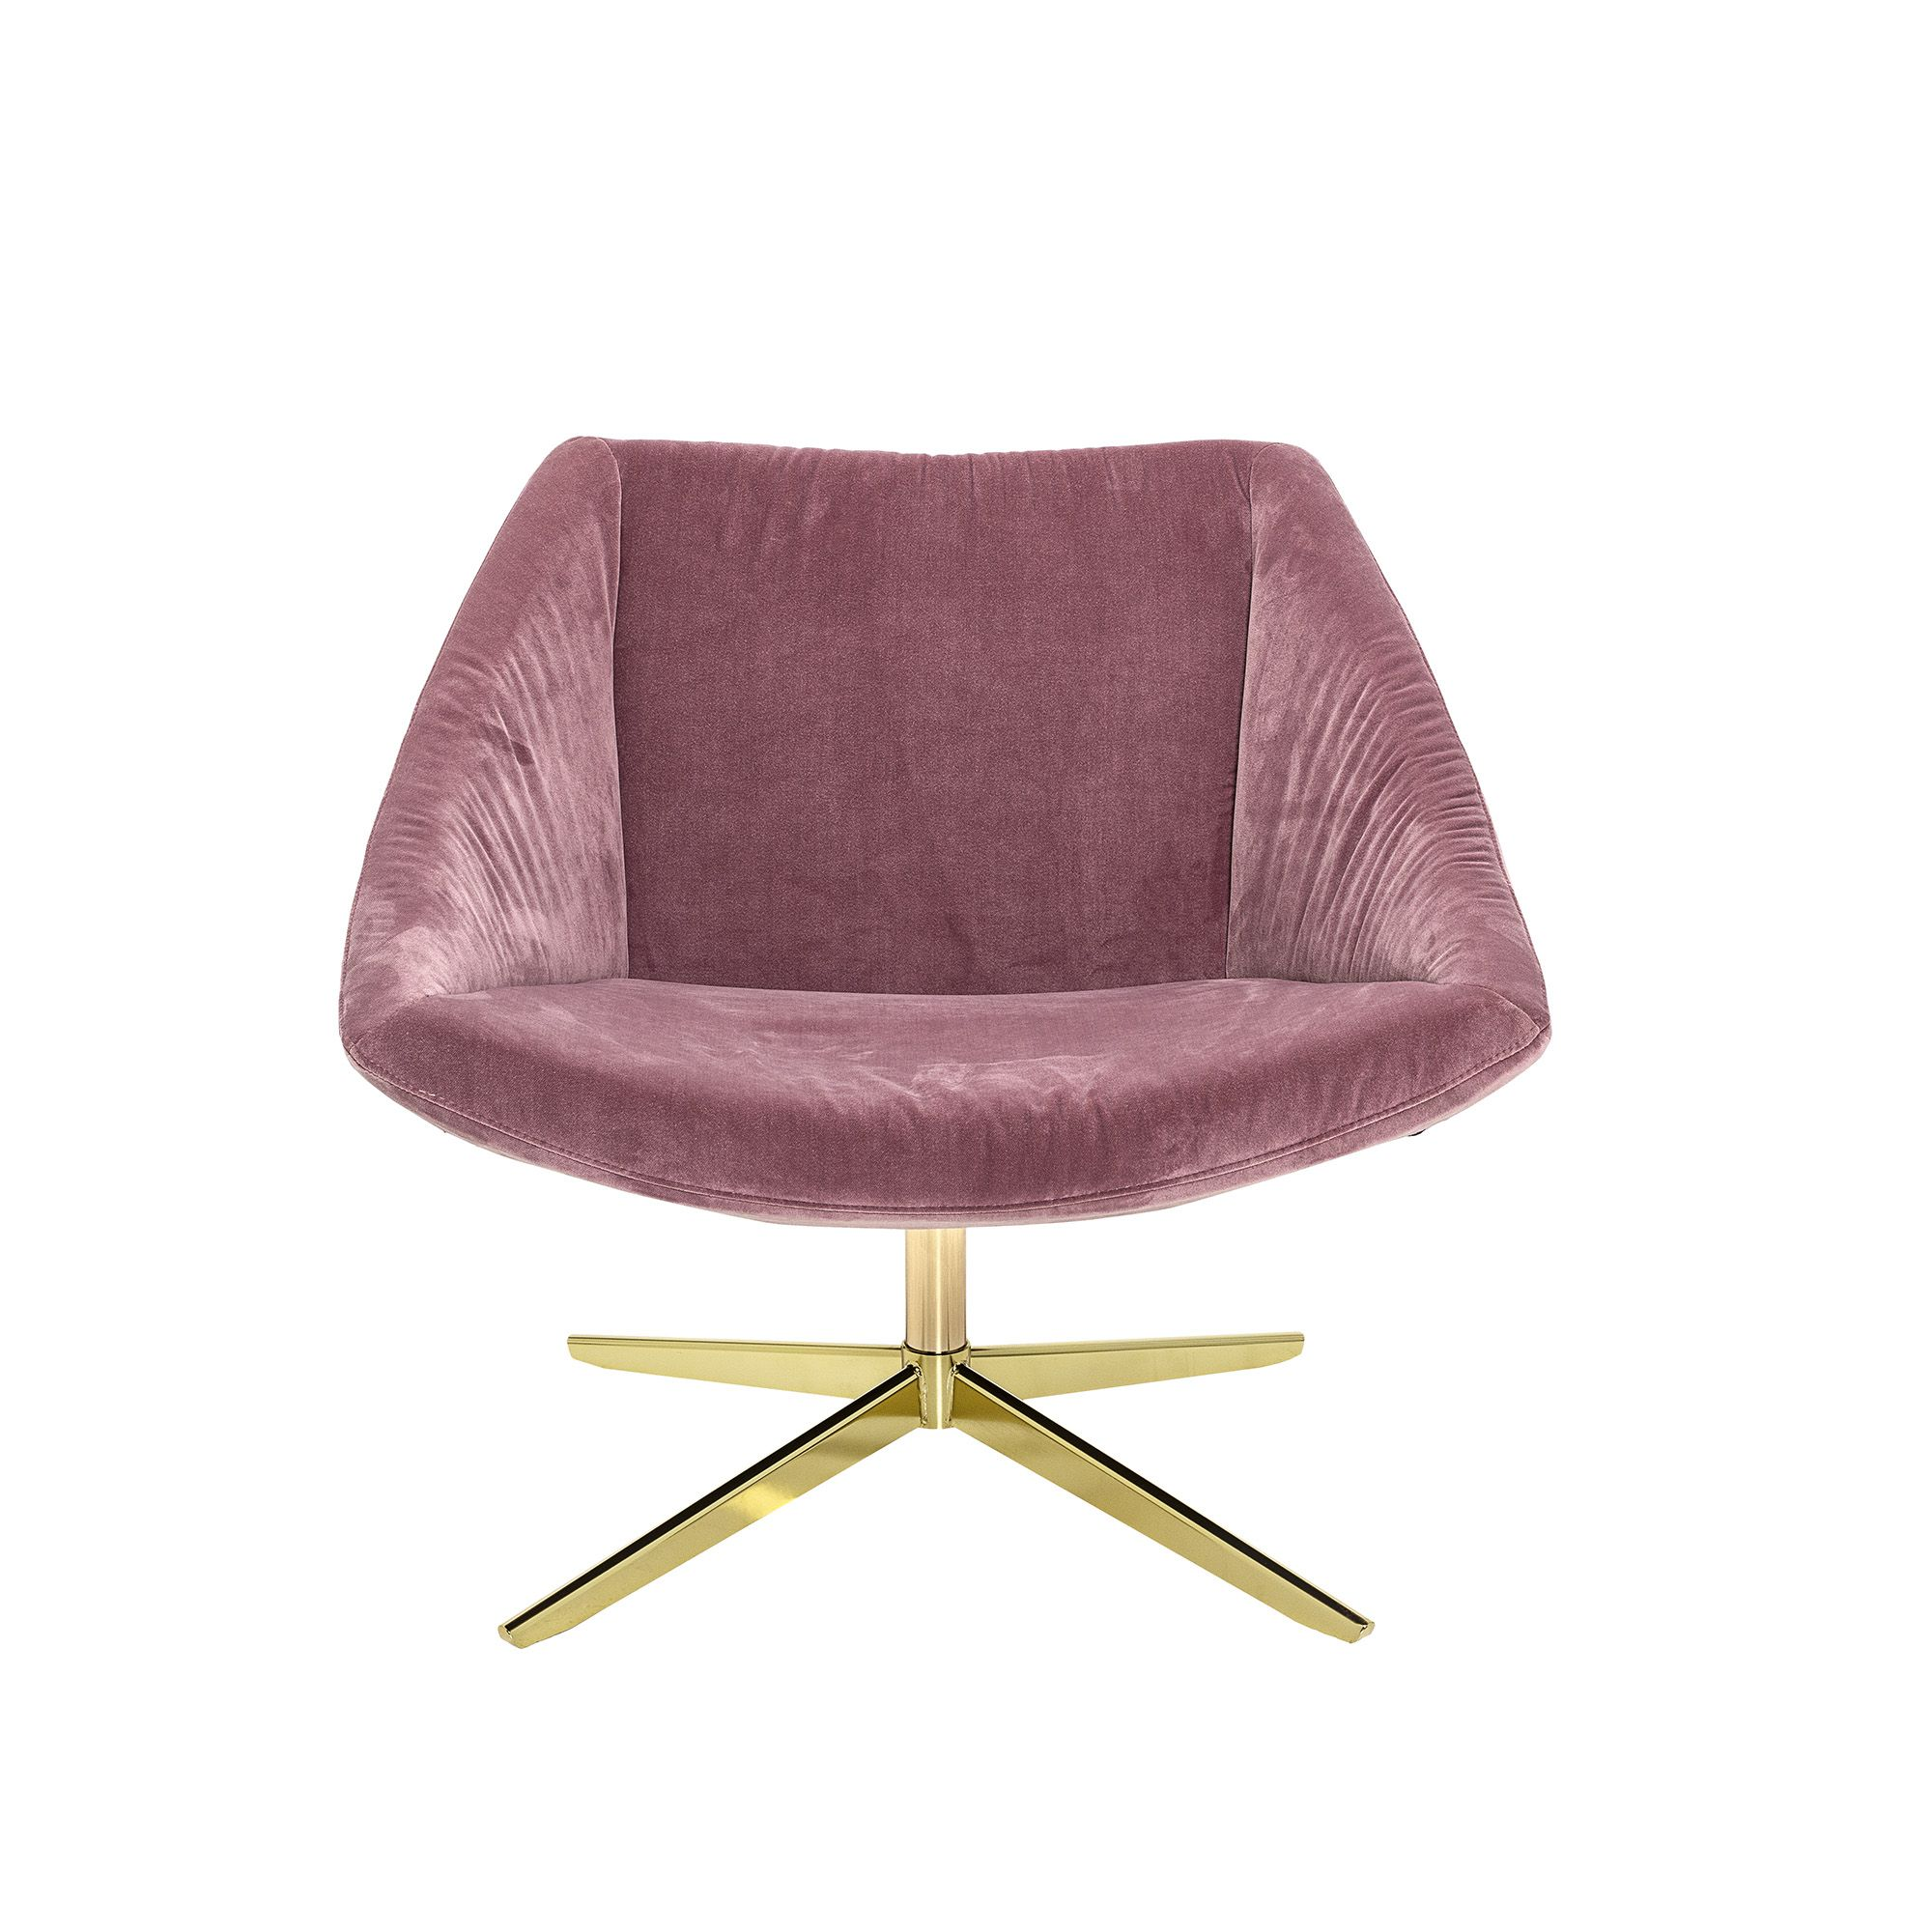 Rose Velvet Elegant Chair Design By Bloomingville Samt Sessel Sessel Leder Esszimmer Stuhle